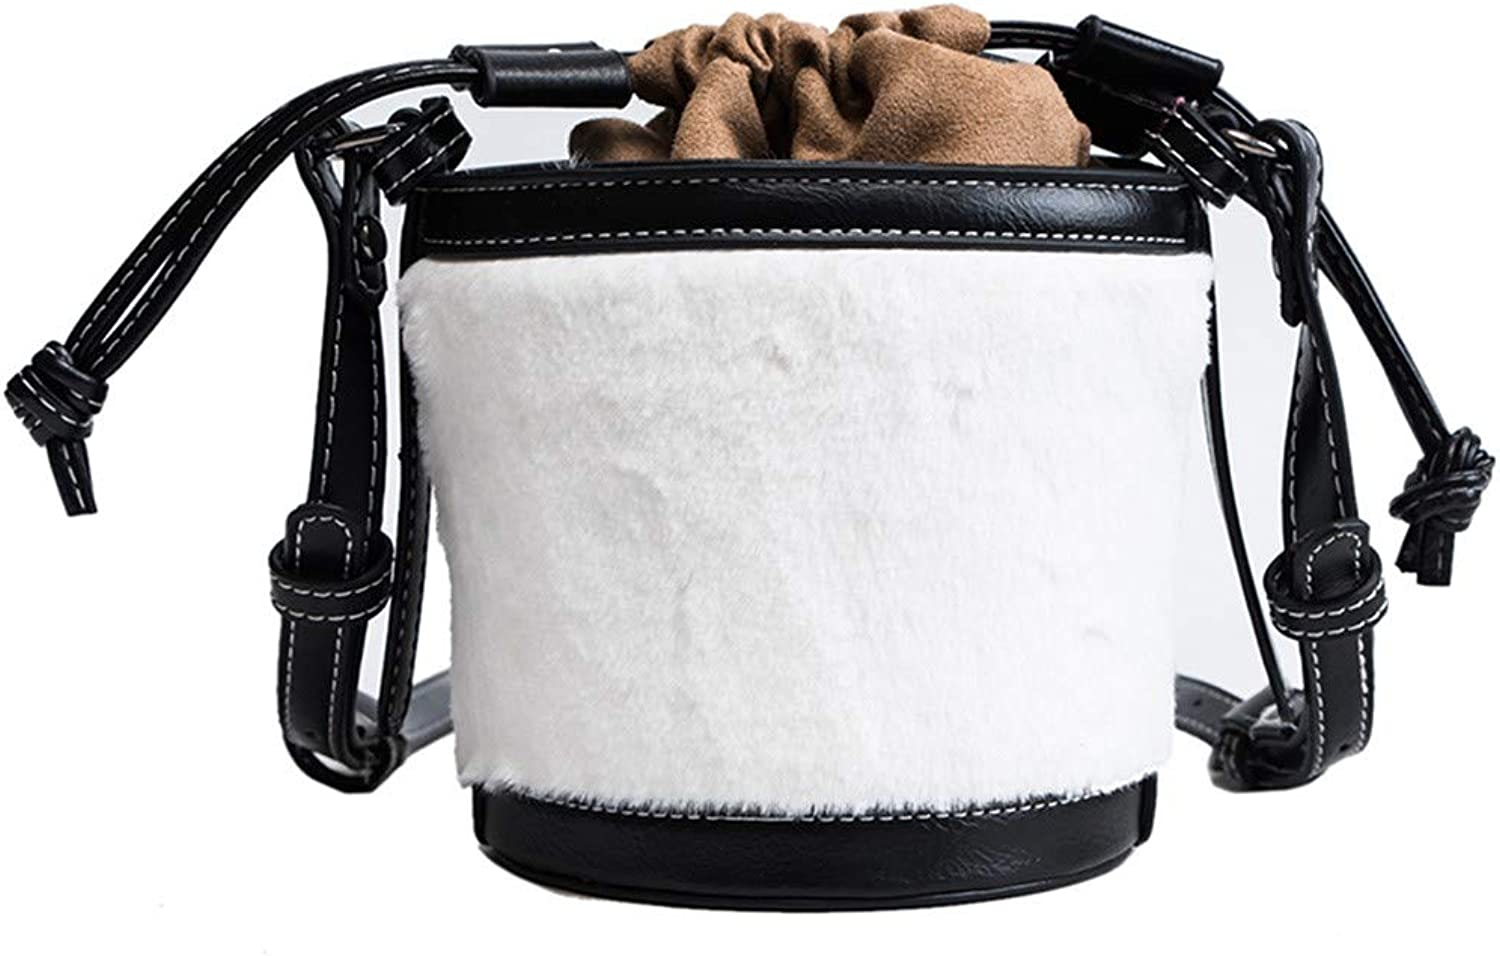 H-M-STUDIO Bag Personality Hair Bucket Port Style Fashionable Shoulder Bag. White 15  14  13Cm